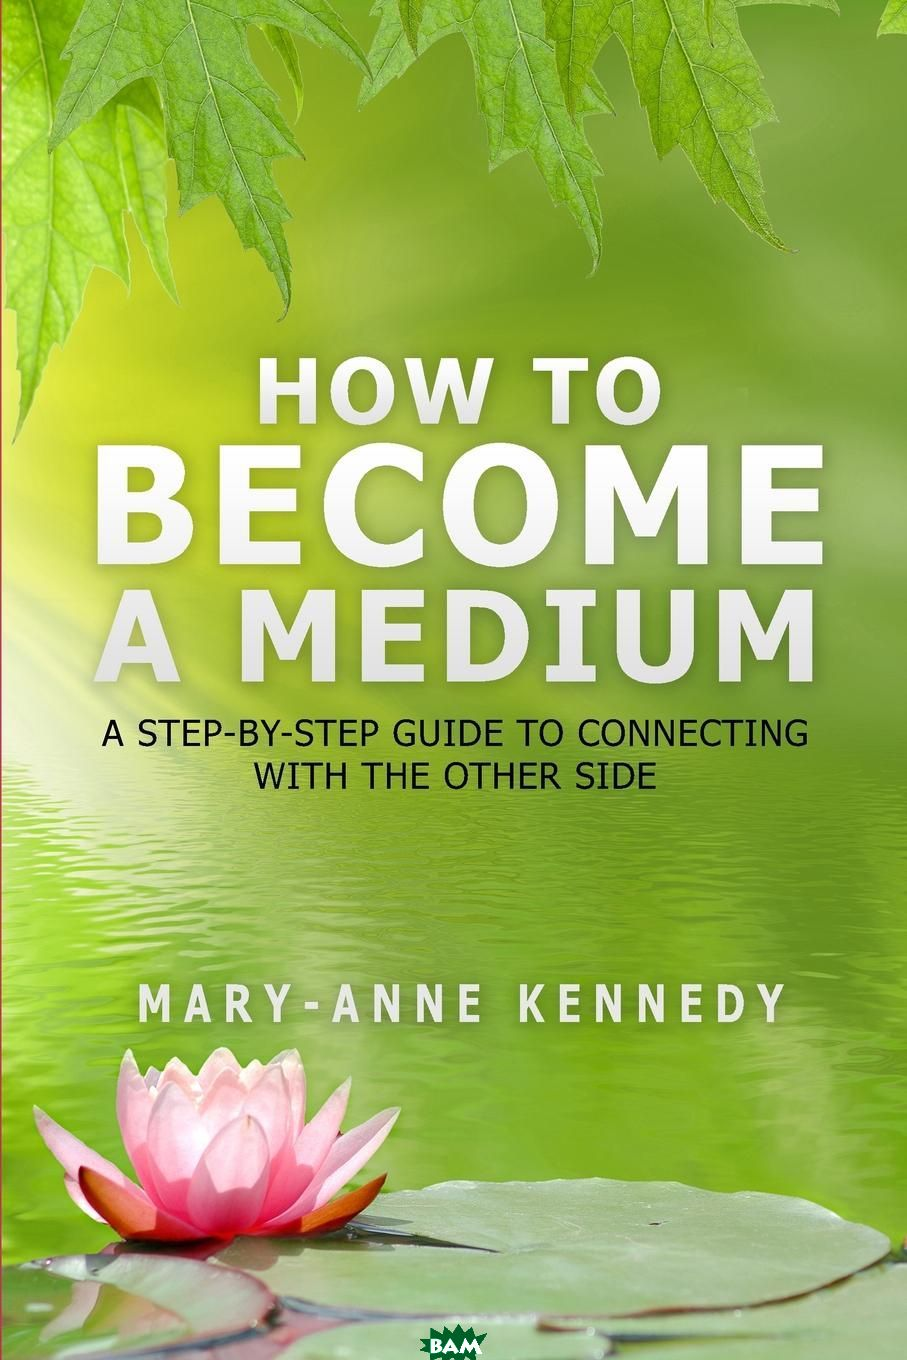 Купить How to Become a Medium. A Step-By-Step Guide to Connecting with the Other Side, Mary-Anne Kennedy, 9780692478035